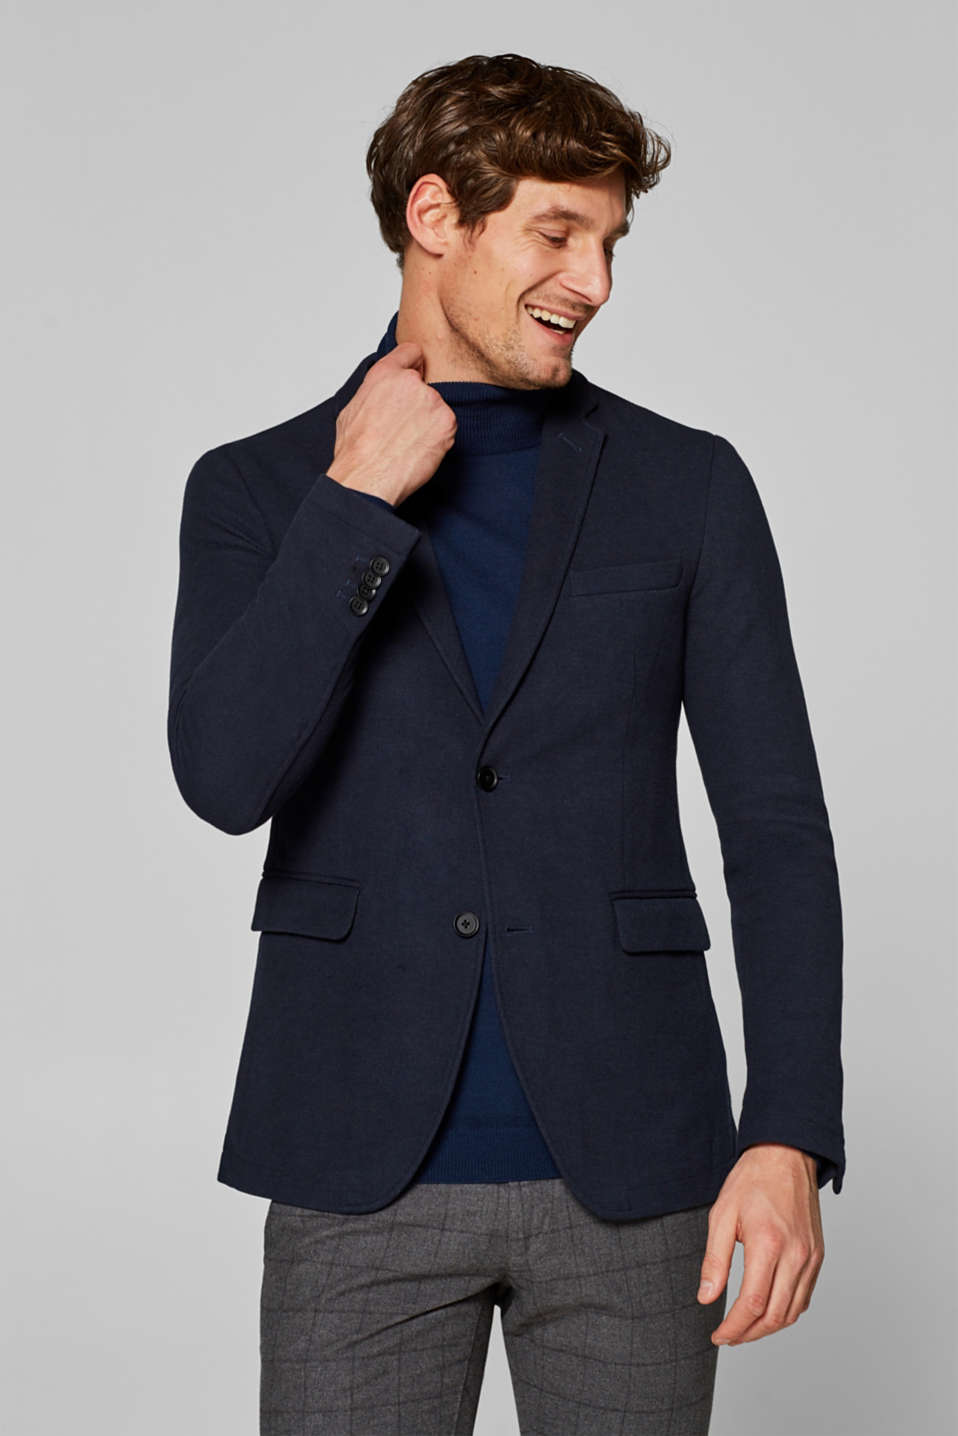 Esprit - Piqué tailored jacket with a lapel collar